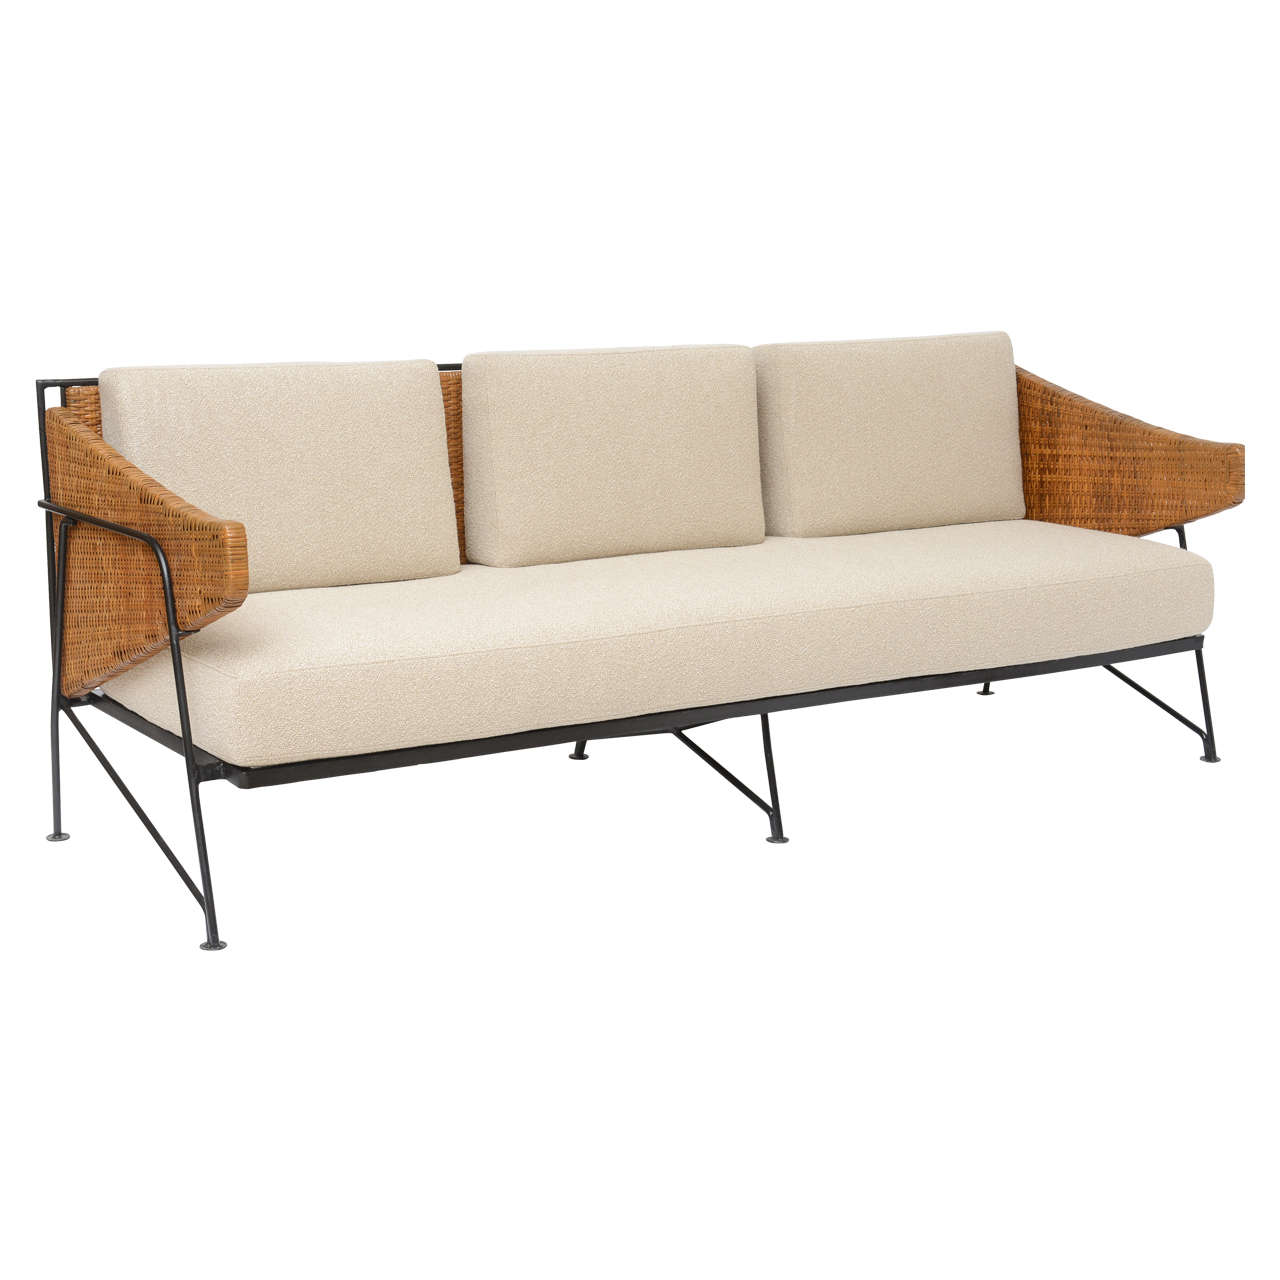 Wrought Iron And Wicker Sofa By Maurizio Tempestini For Salterini At 1stdibs